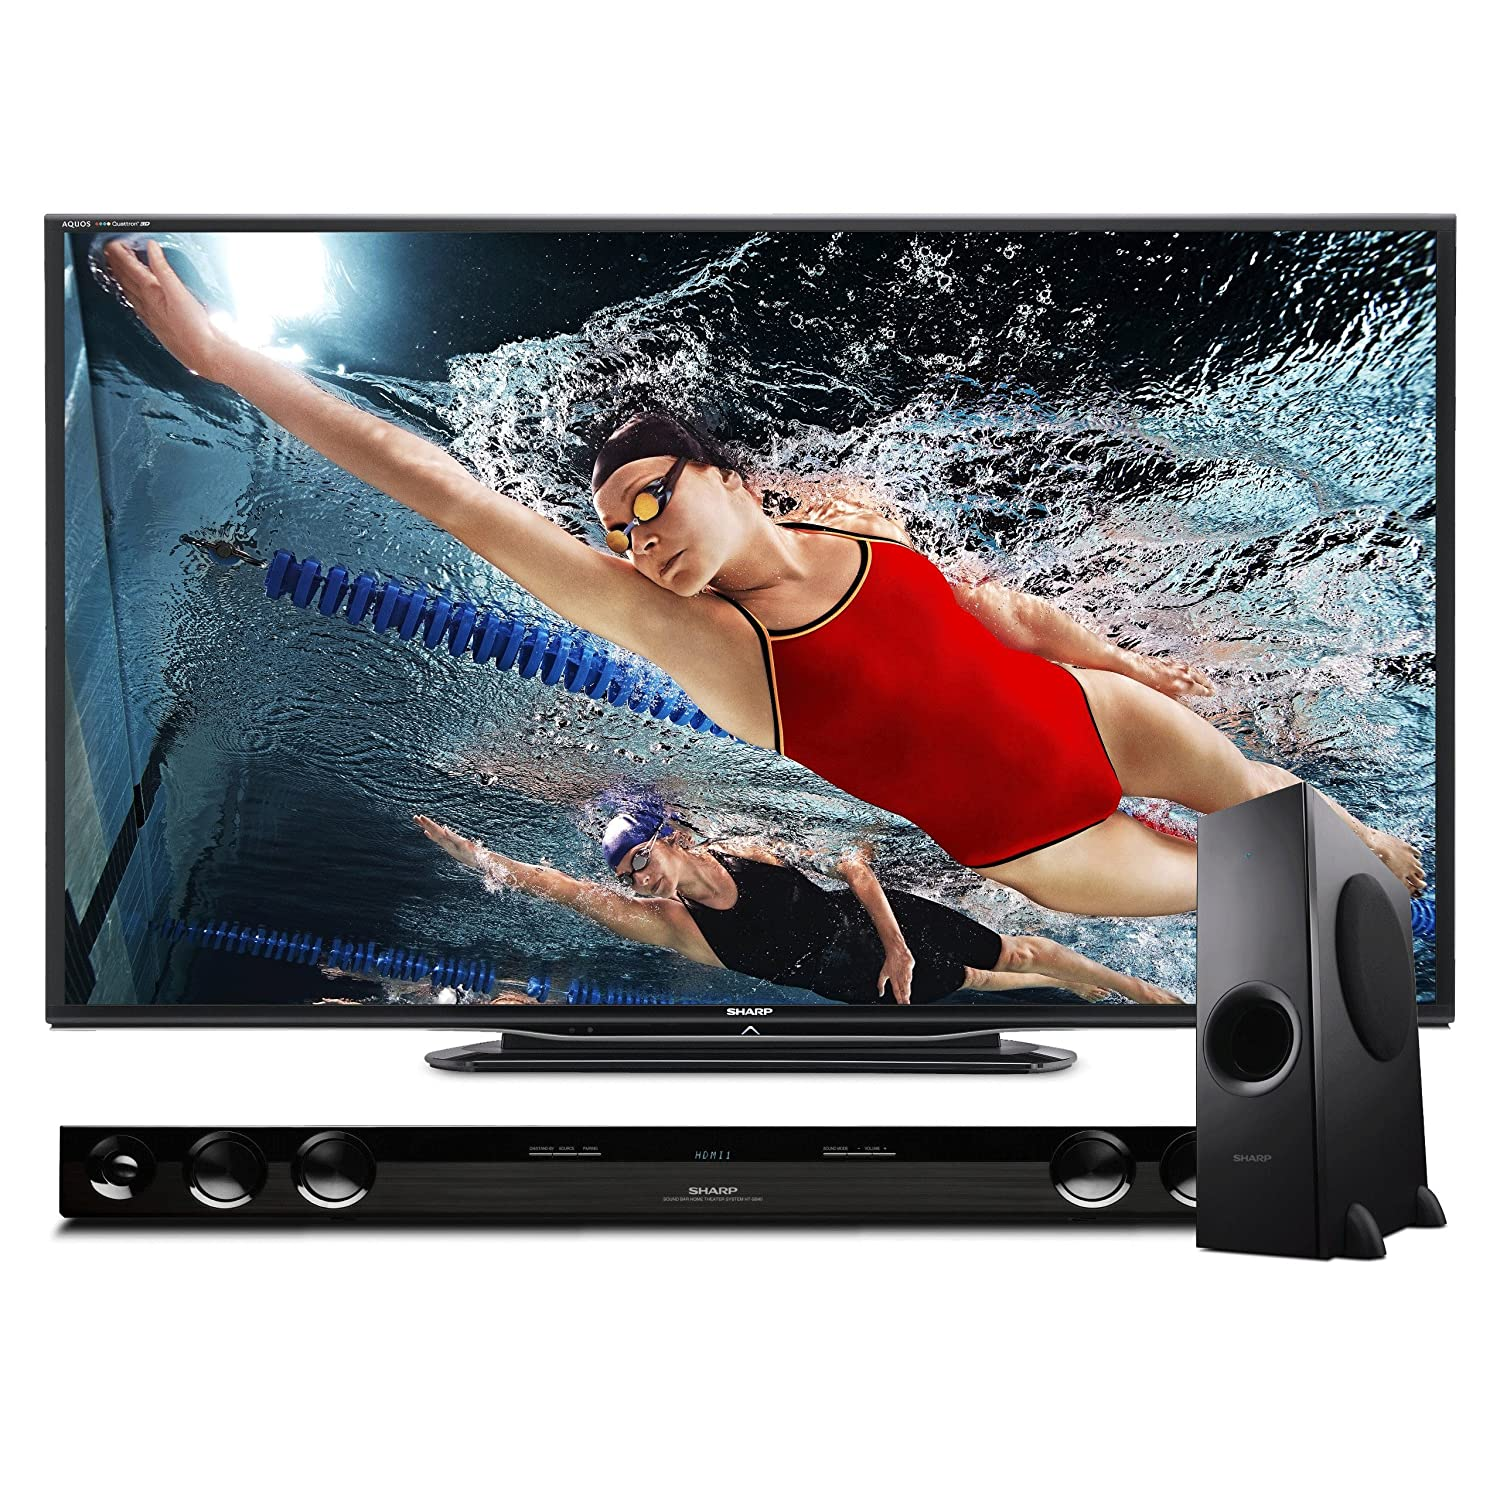 Sharp 60C7500 Quattron LED HDTV and HT-SB40 Sound Bar Bundle $1,299.99